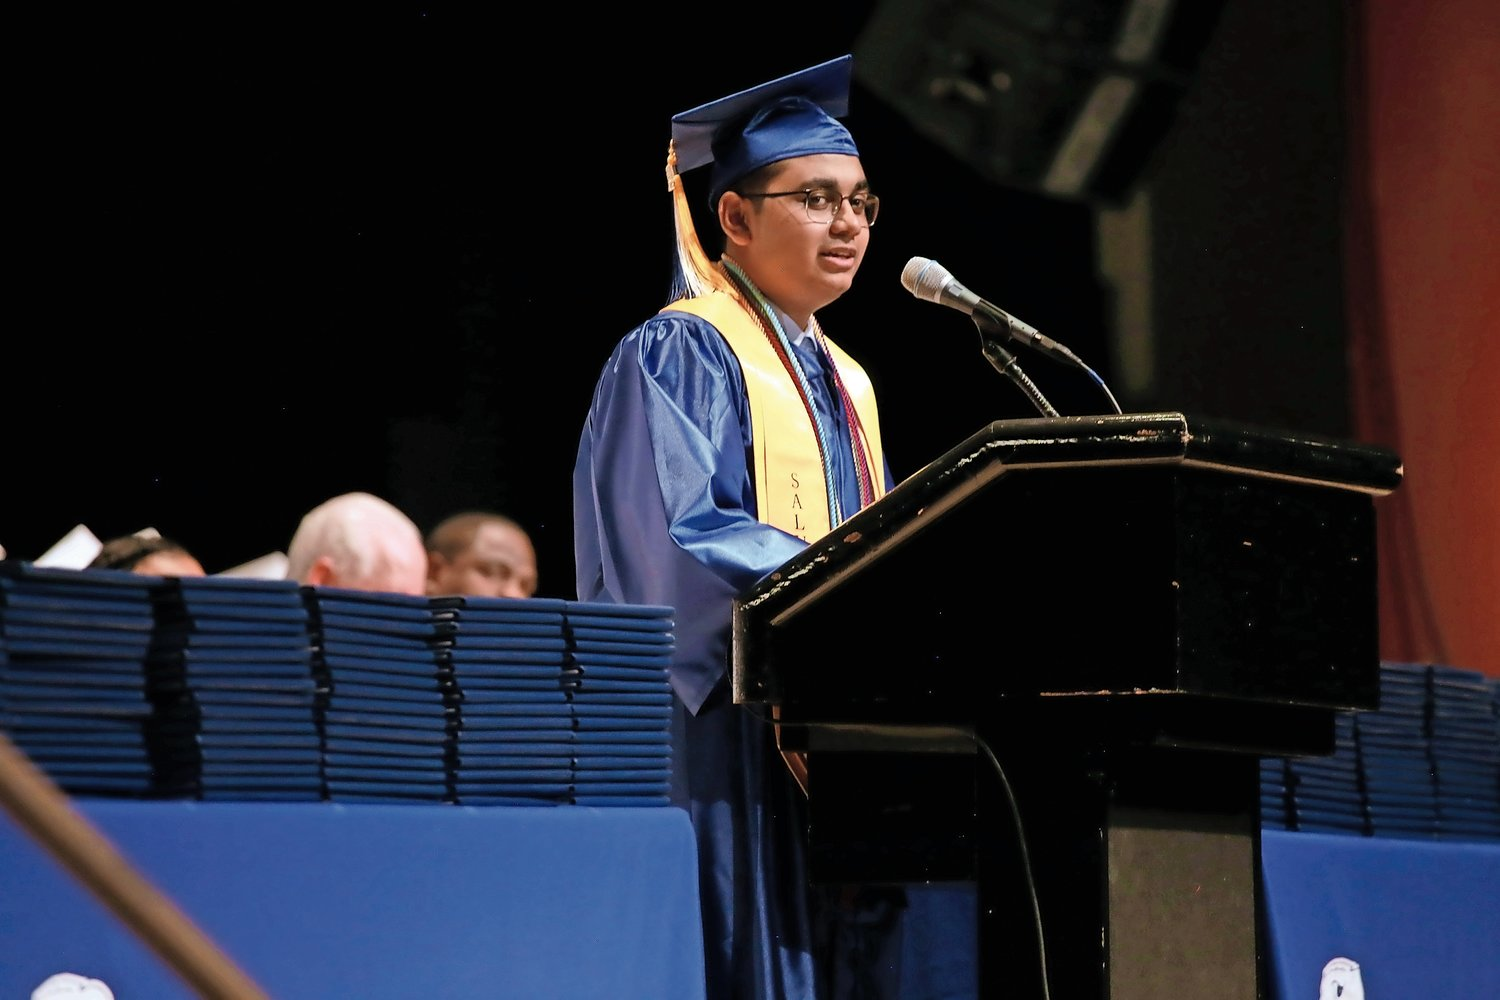 Salutatorian Nader Ahmed said graduation said they were concluding a chapter of their lives.